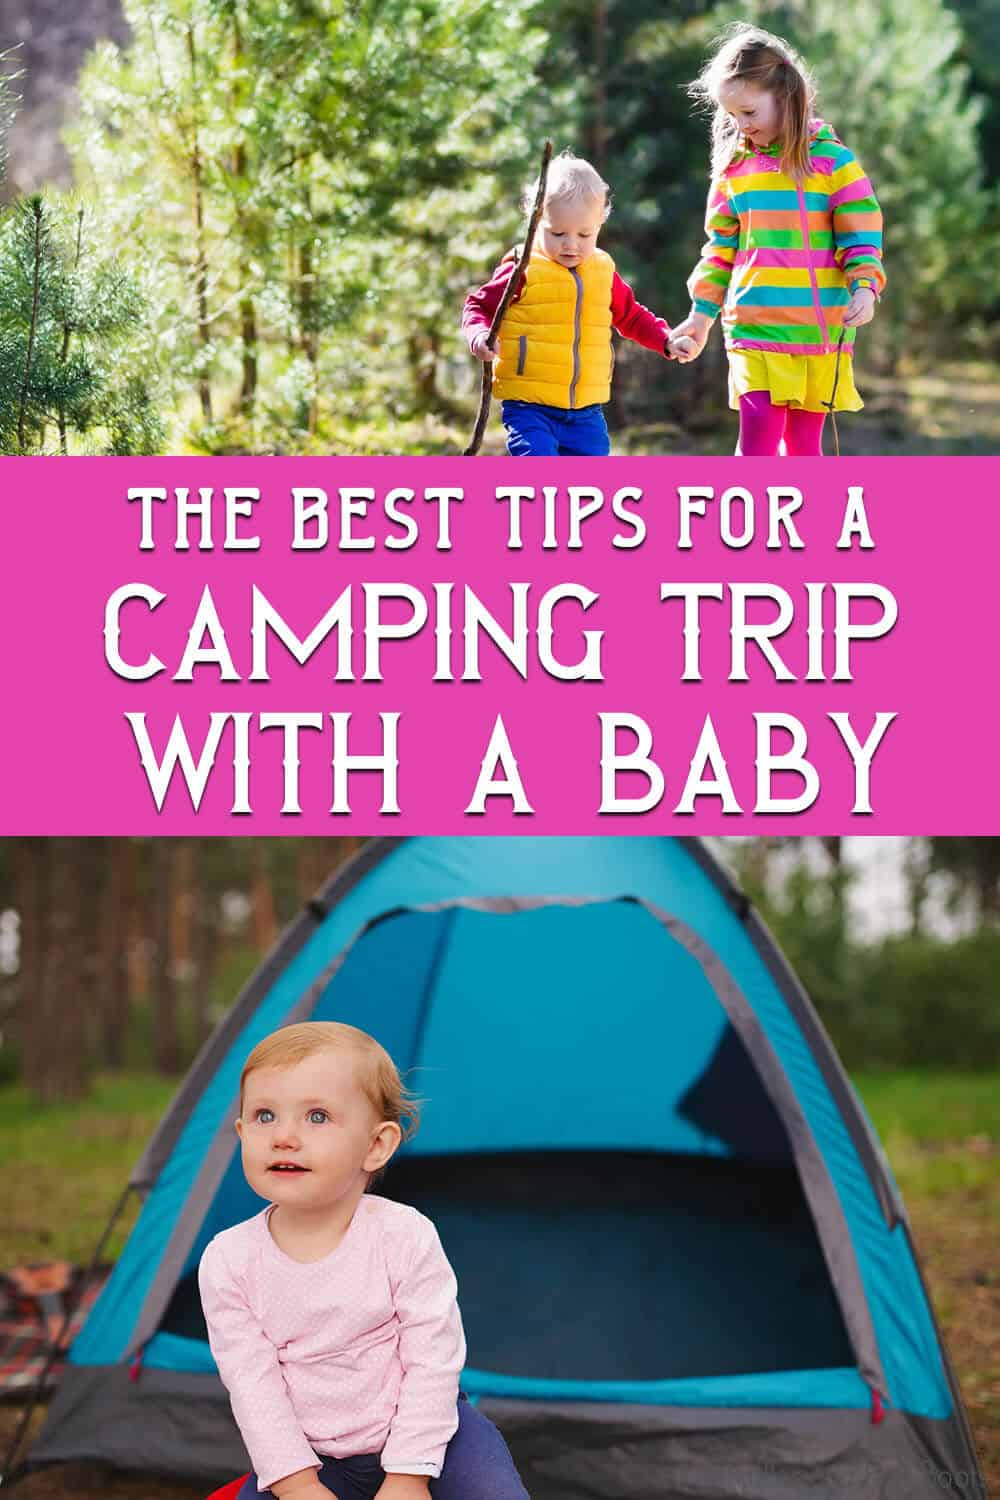 photo collage of baby camping trip safety tips with text which reads the best tips for a camping trip with a baby